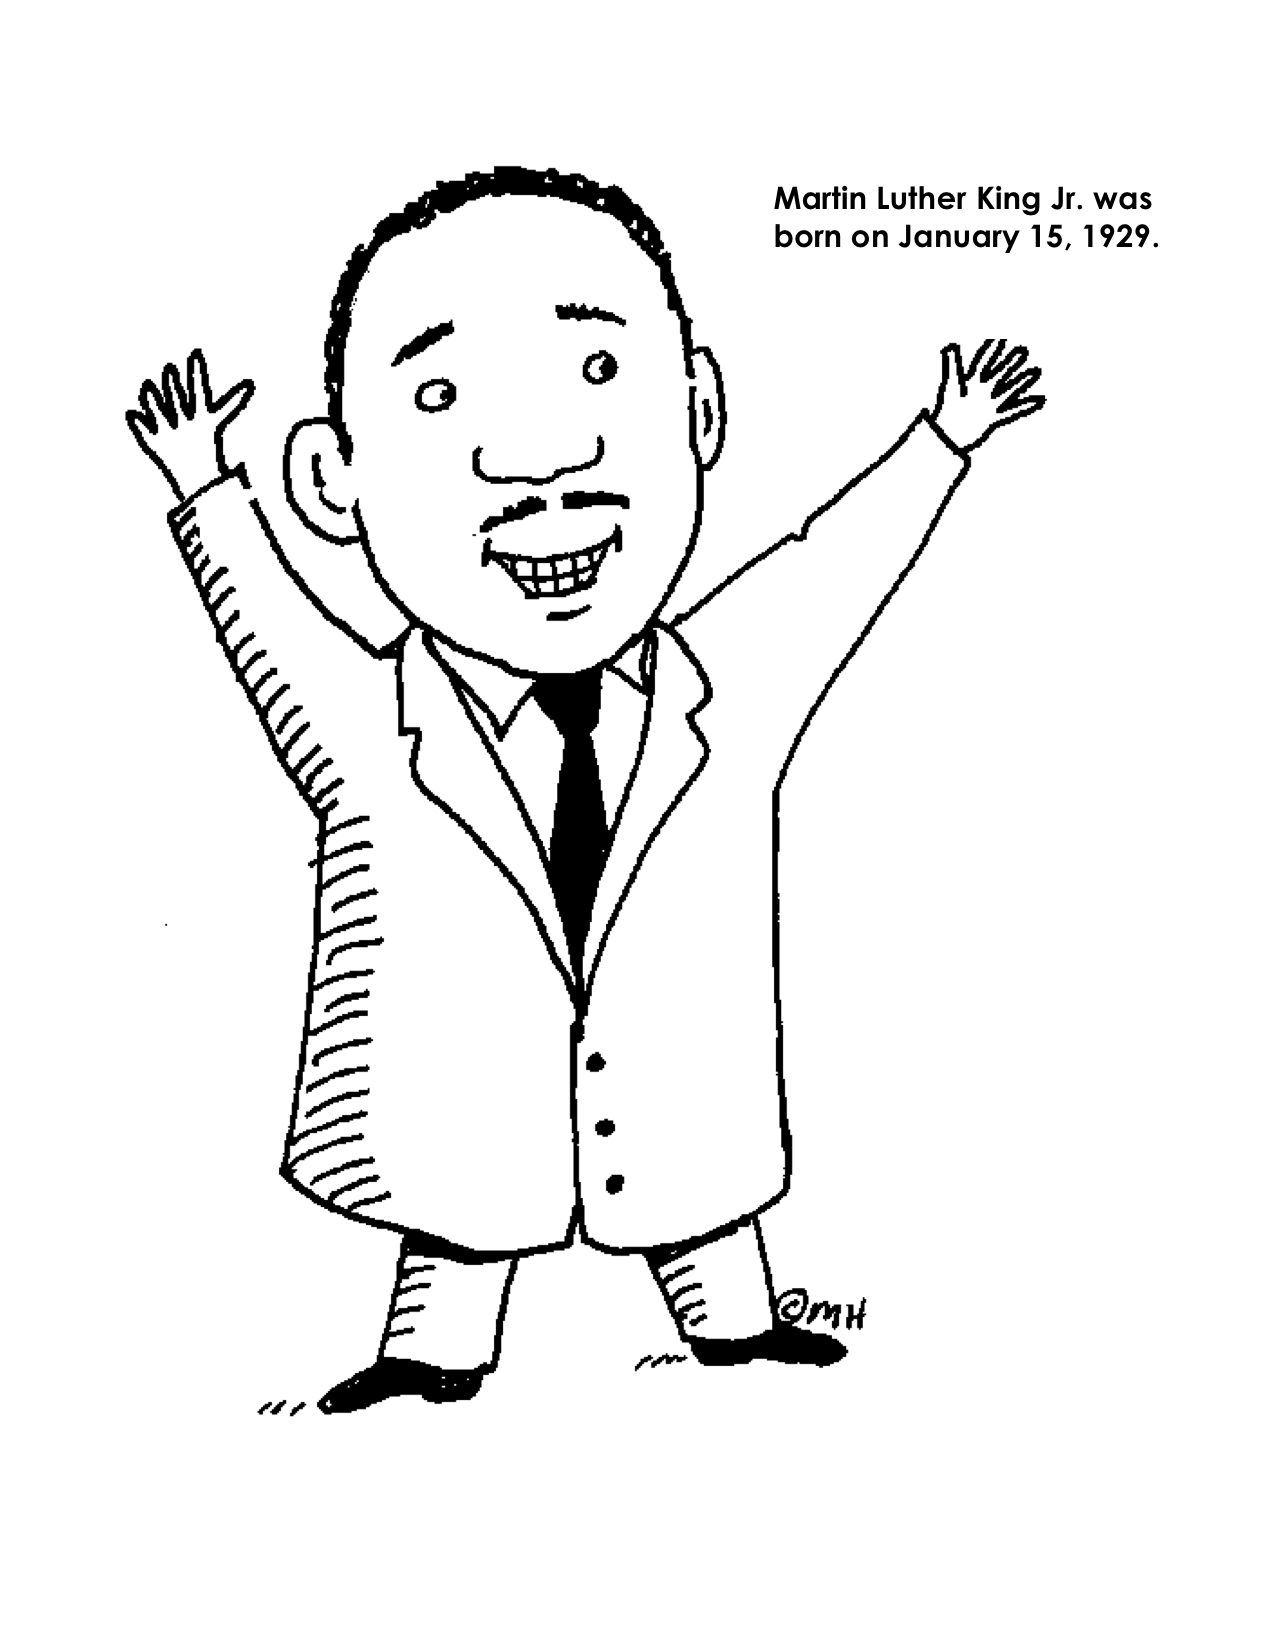 martin luther king jr coloring pages free martin luther king jr coloring pages and worksheets best free coloring pages king martin luther jr